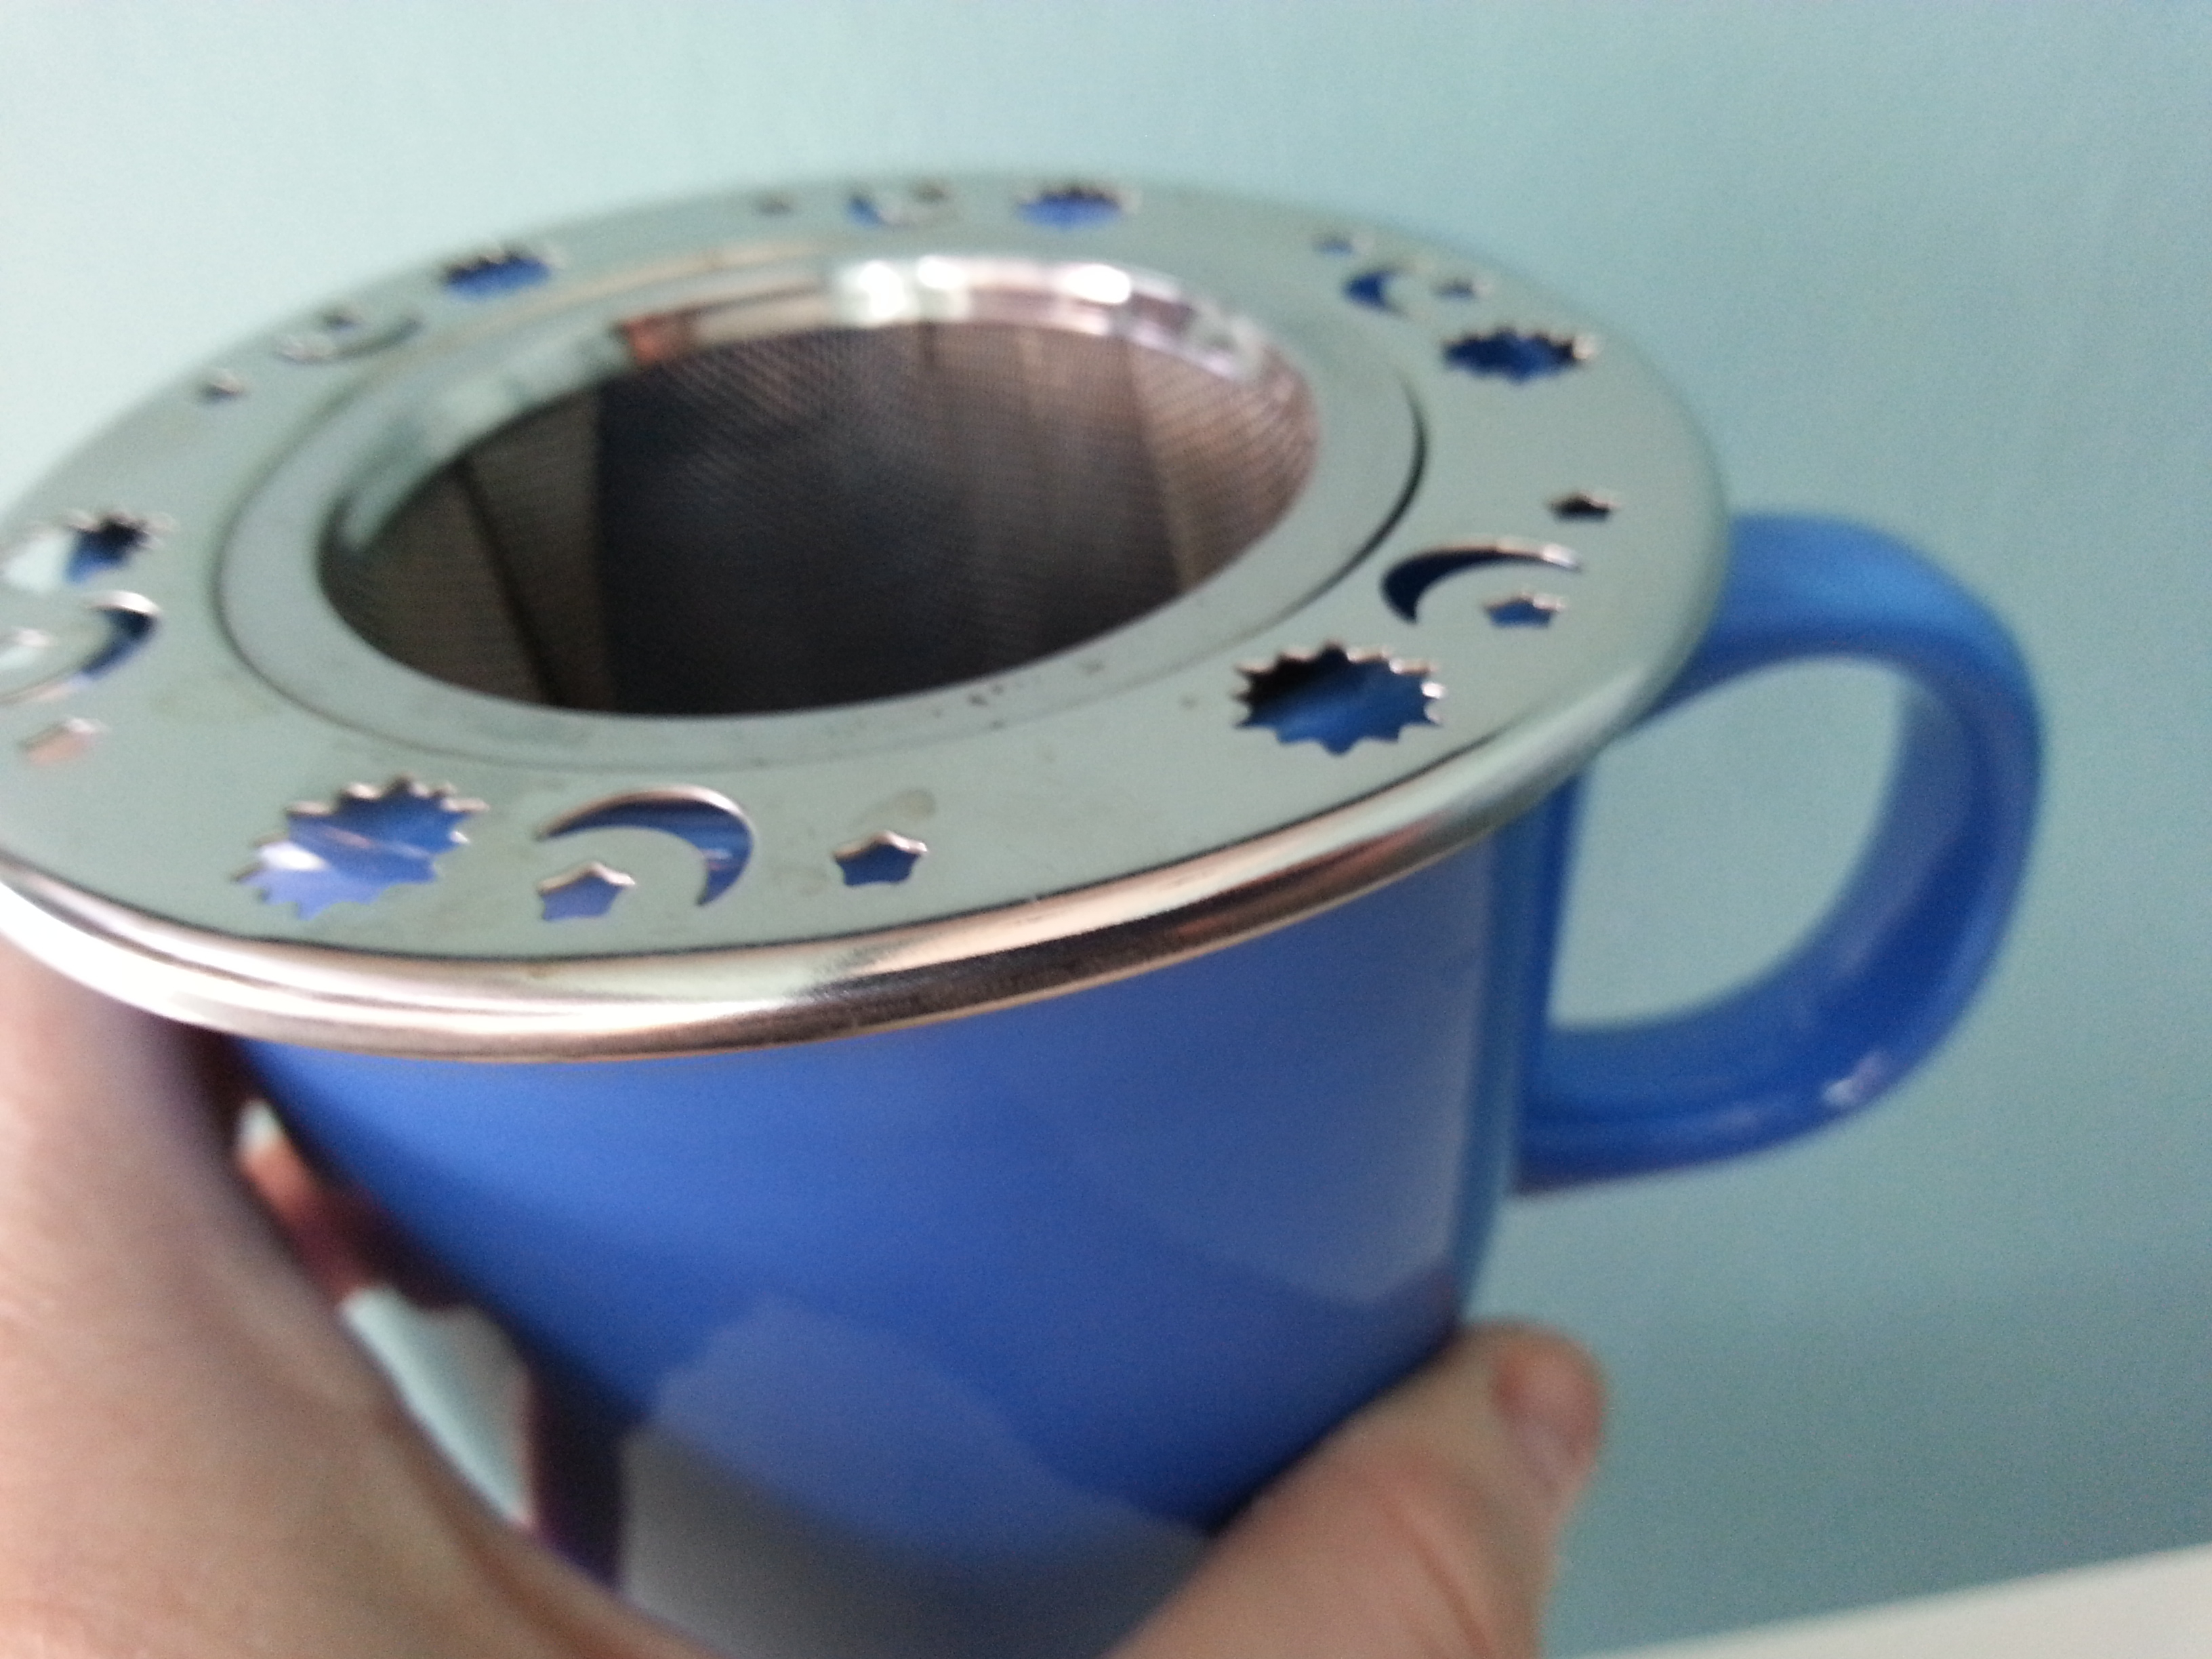 celestial tea strainer sits right inside your favorite tea cup